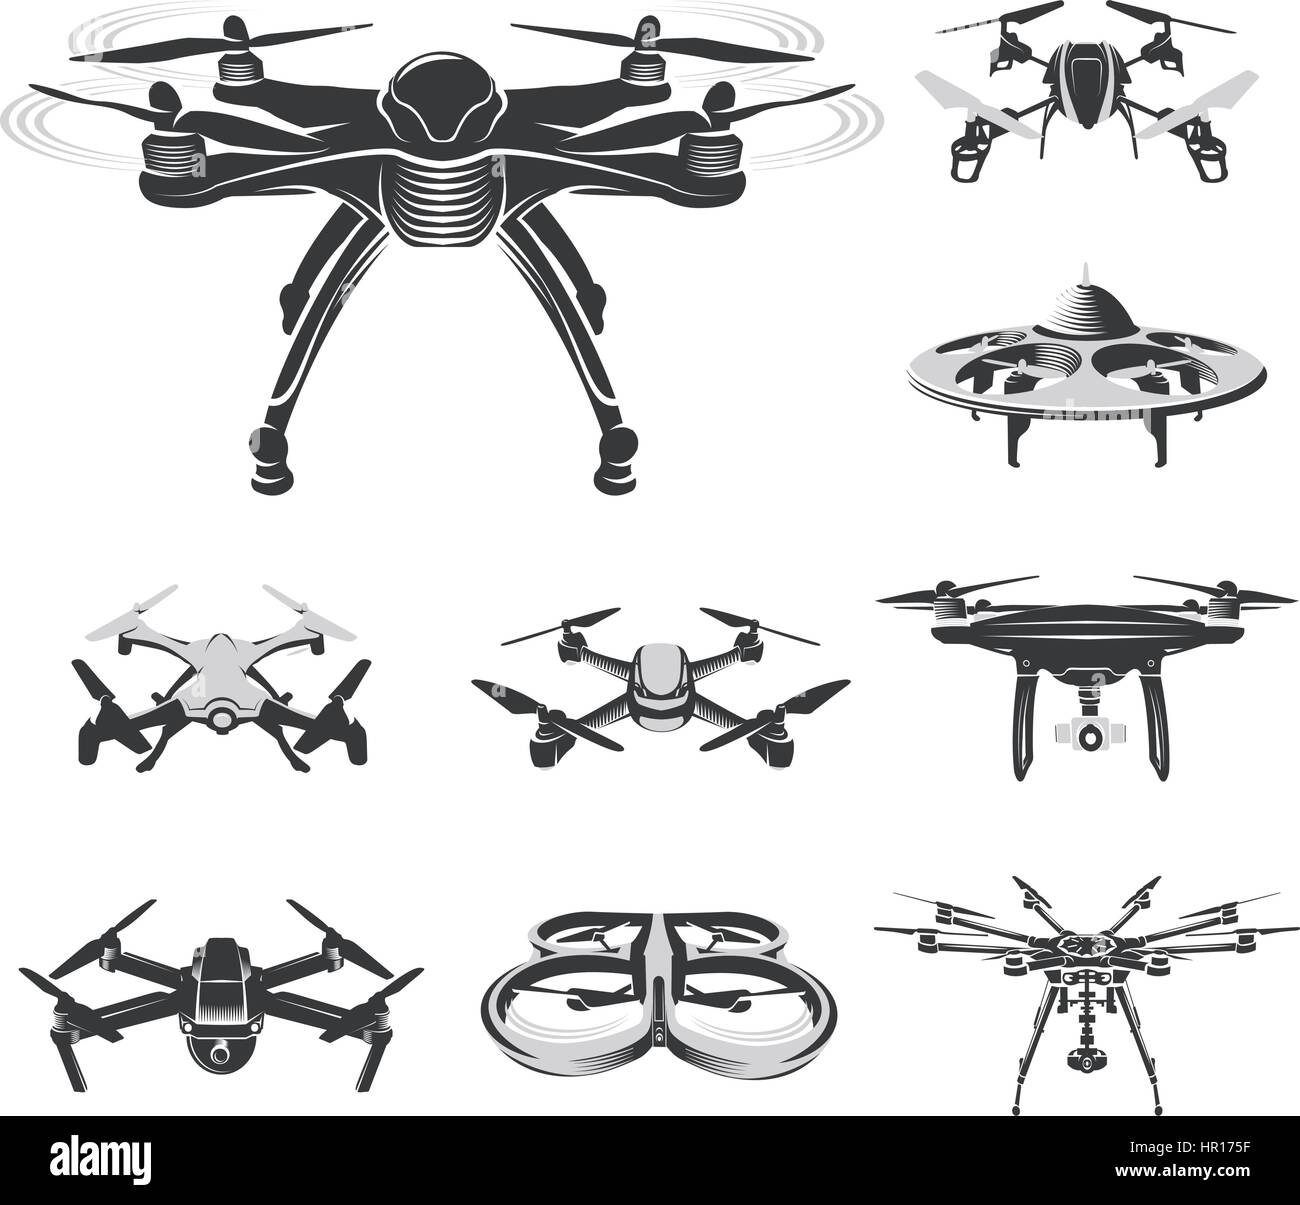 Isolated quadcopter, rc drone logo collection, fpv device logotype set vector illustration - Stock Image